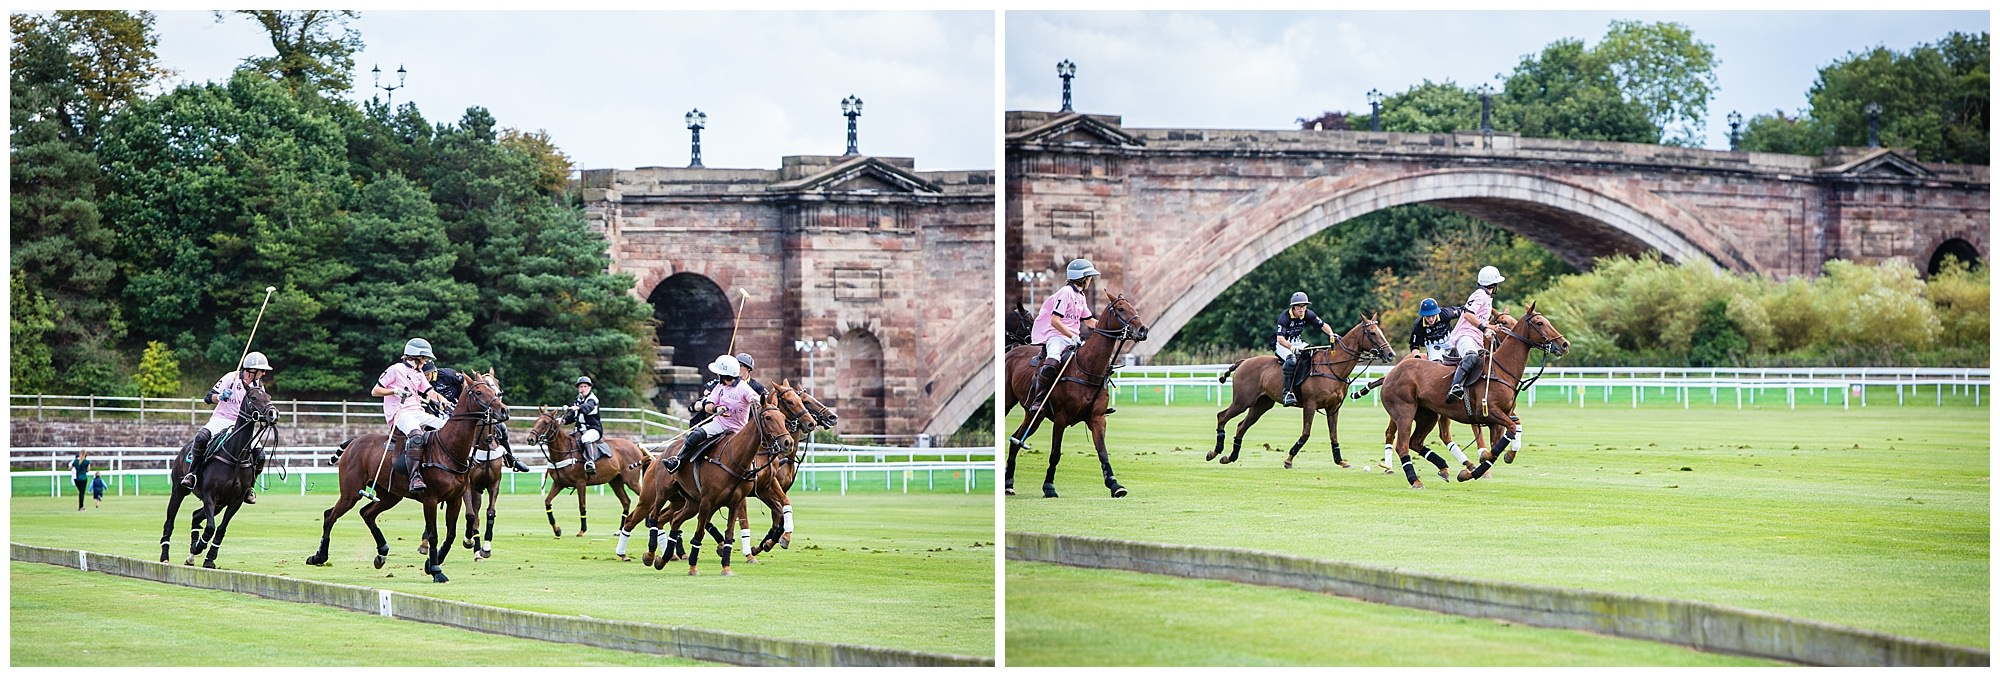 polo action on the roodee with the picturesque bridge in the background - grosvenor bridge